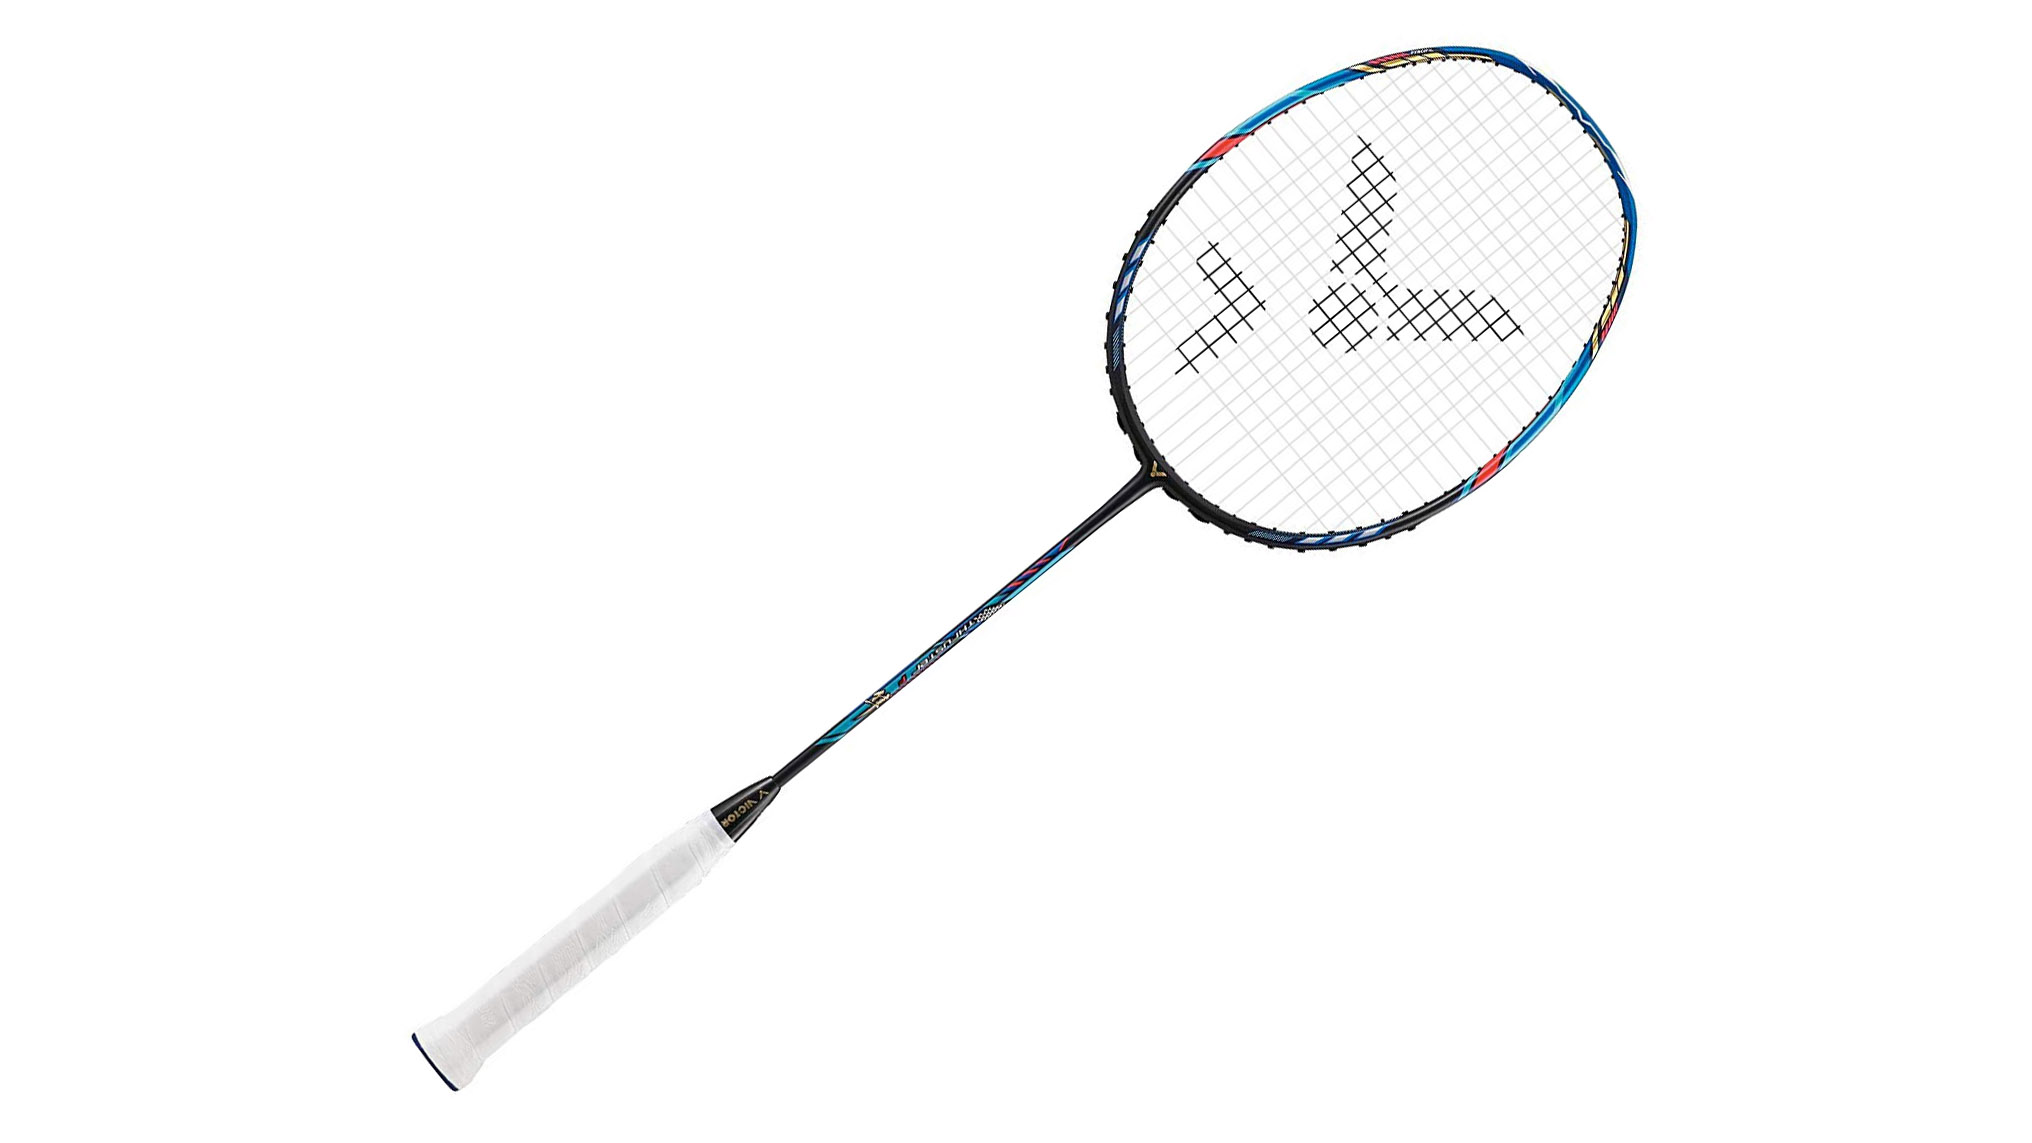 Best badminton racket 2020: Up your game with the perfect racket, from just £10